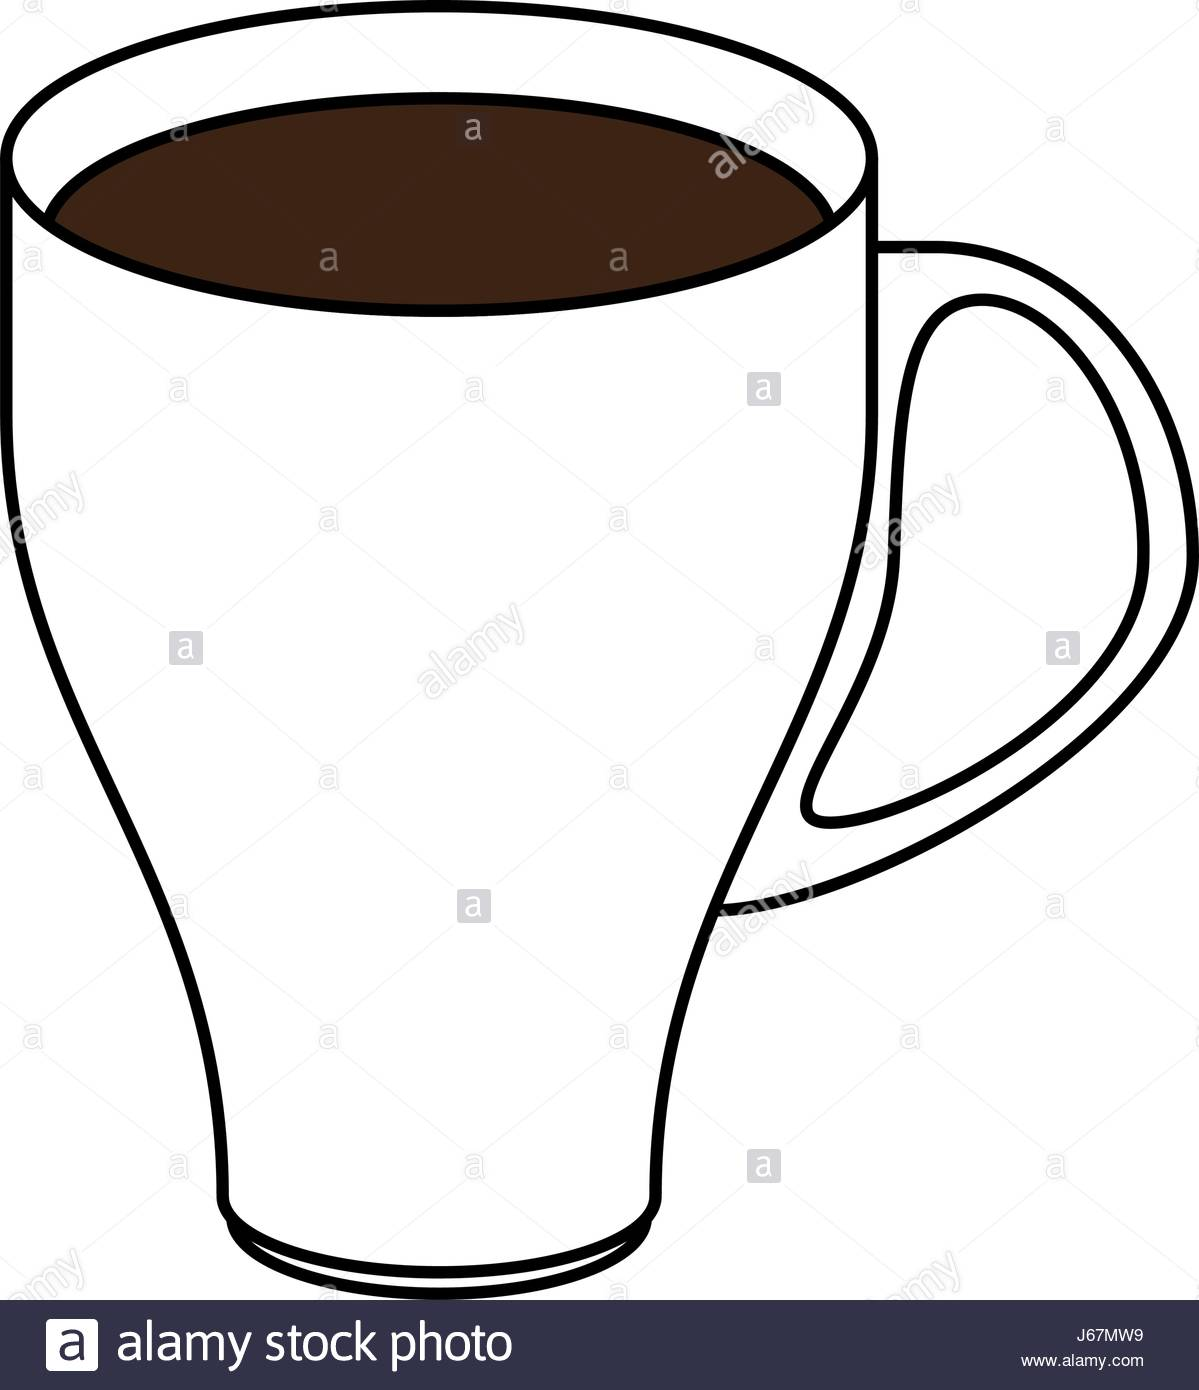 1199x1390 Color Silhouette Image Cartoon Porcelain Modern Cup Of Coffee